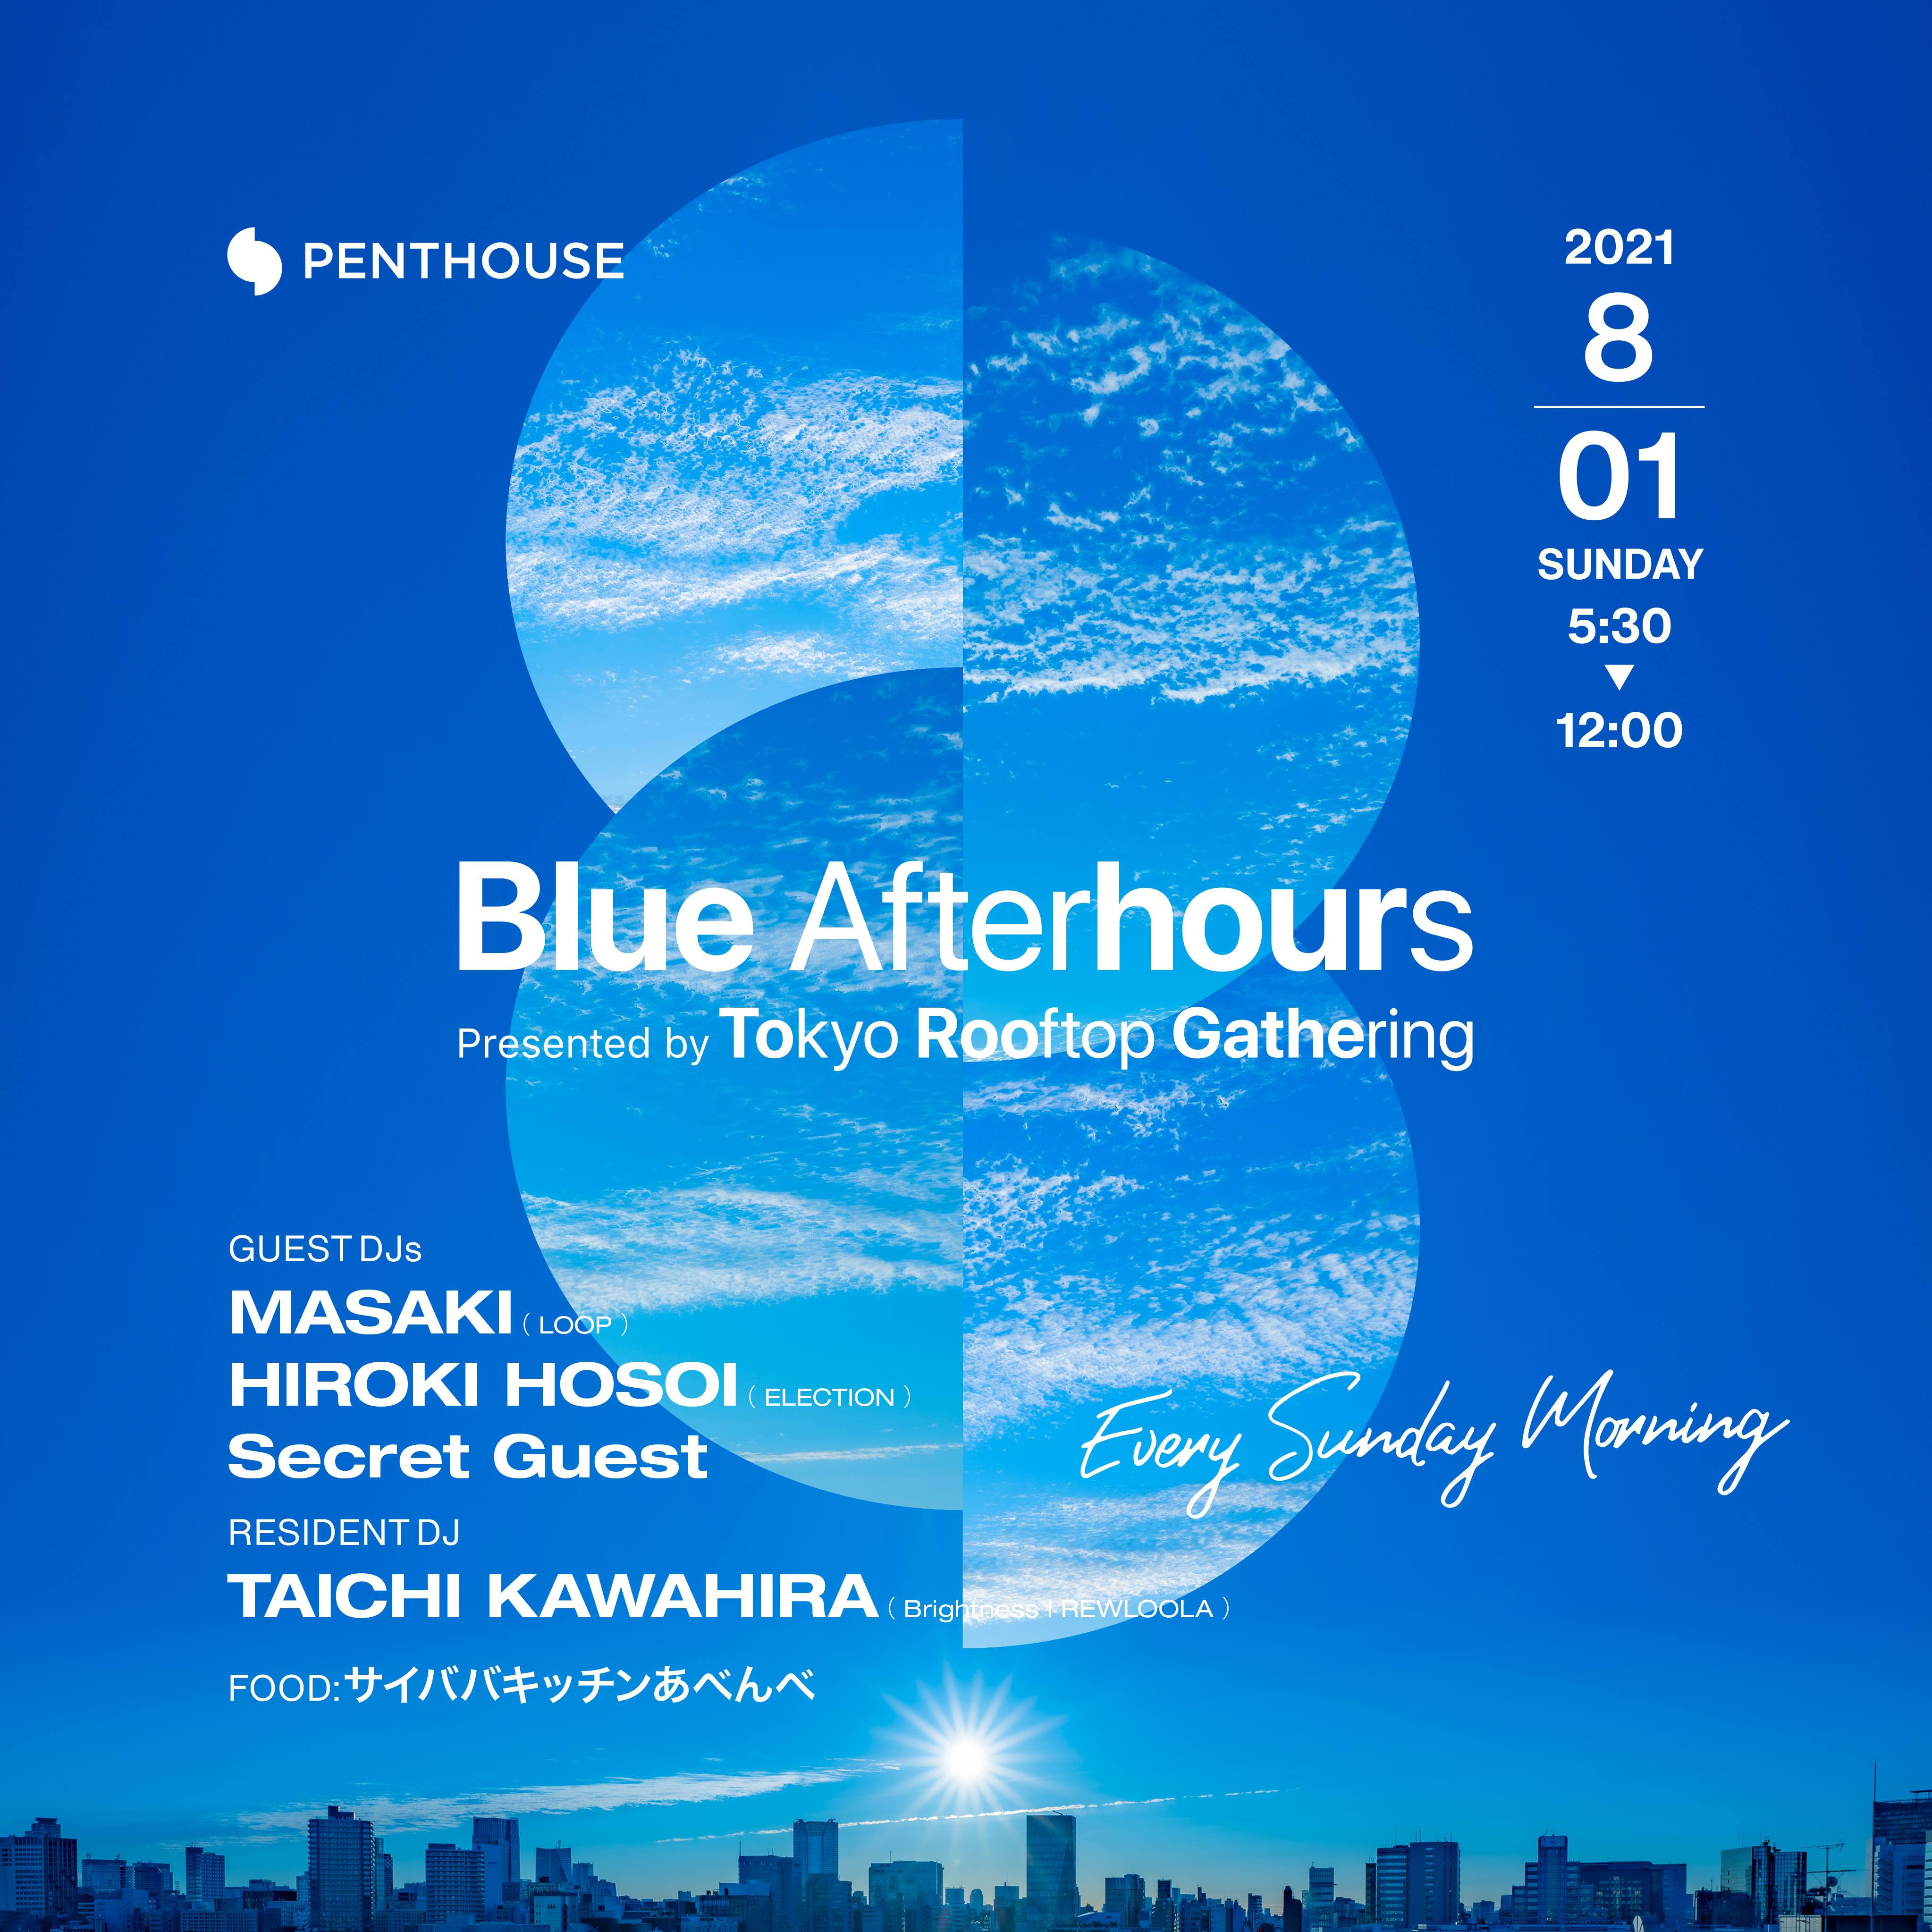 Blue Afterhours -Presented by Tokyo Rooftop Gathering-